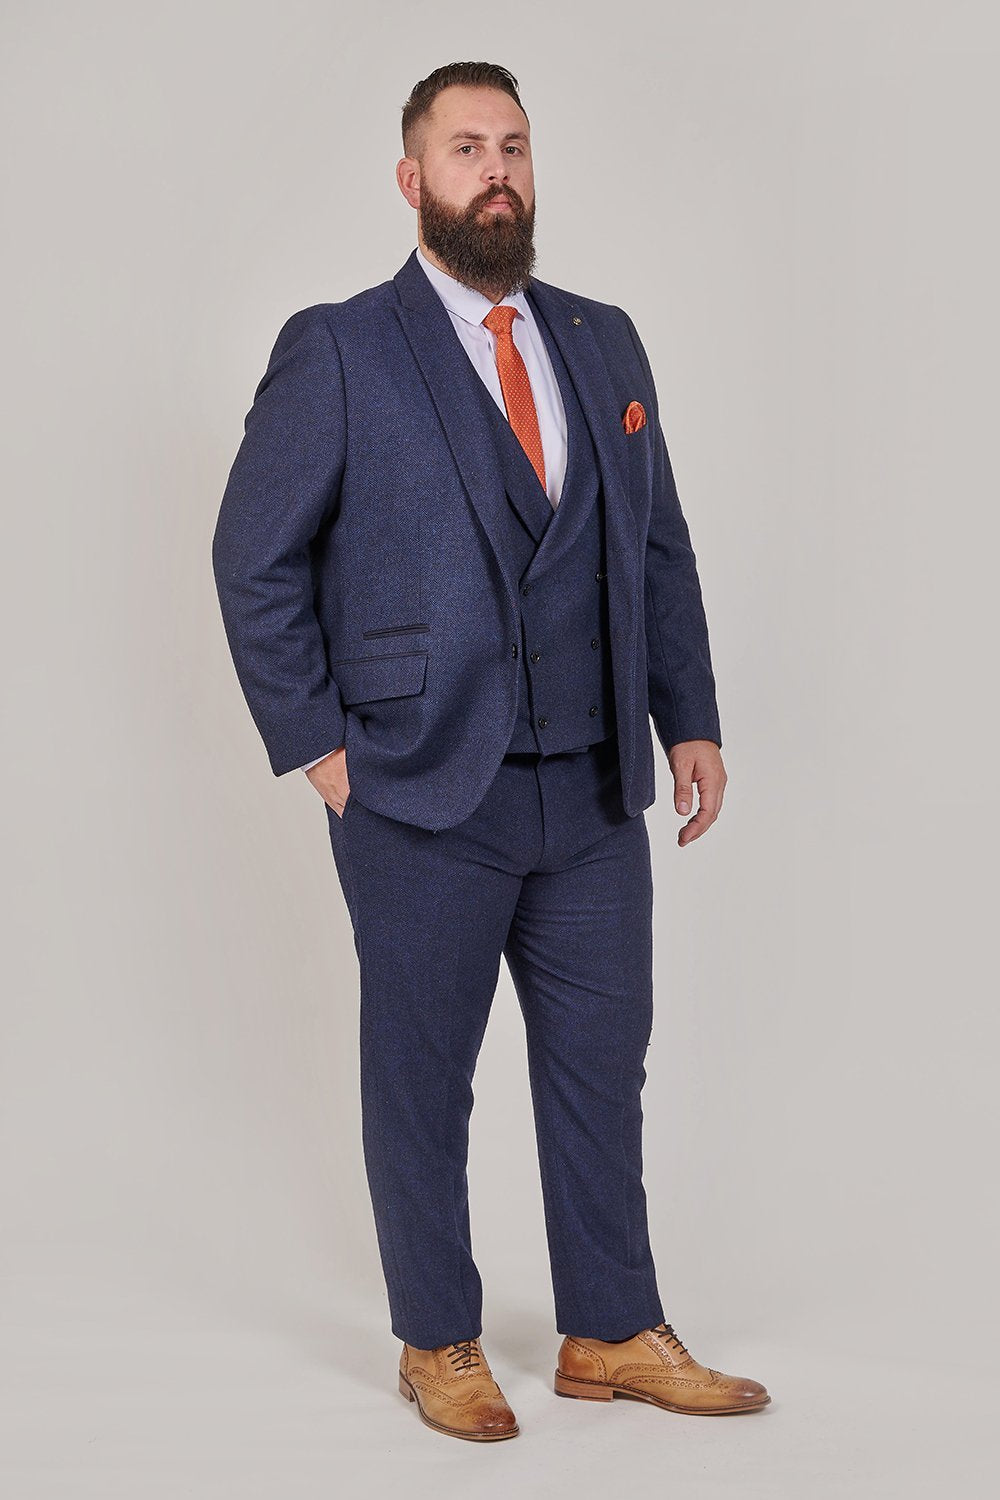 Master Debonair Rathbone Navy Herringbone Tweed 3 Piece Suit master-debonair-rathbone-navy-herringbone-tweed-blazer / master-debonair-rathbone-navy-herringbone-tweed-waistcoat / master-debonair-rathbone-navy-herringbone-tweed-trousers